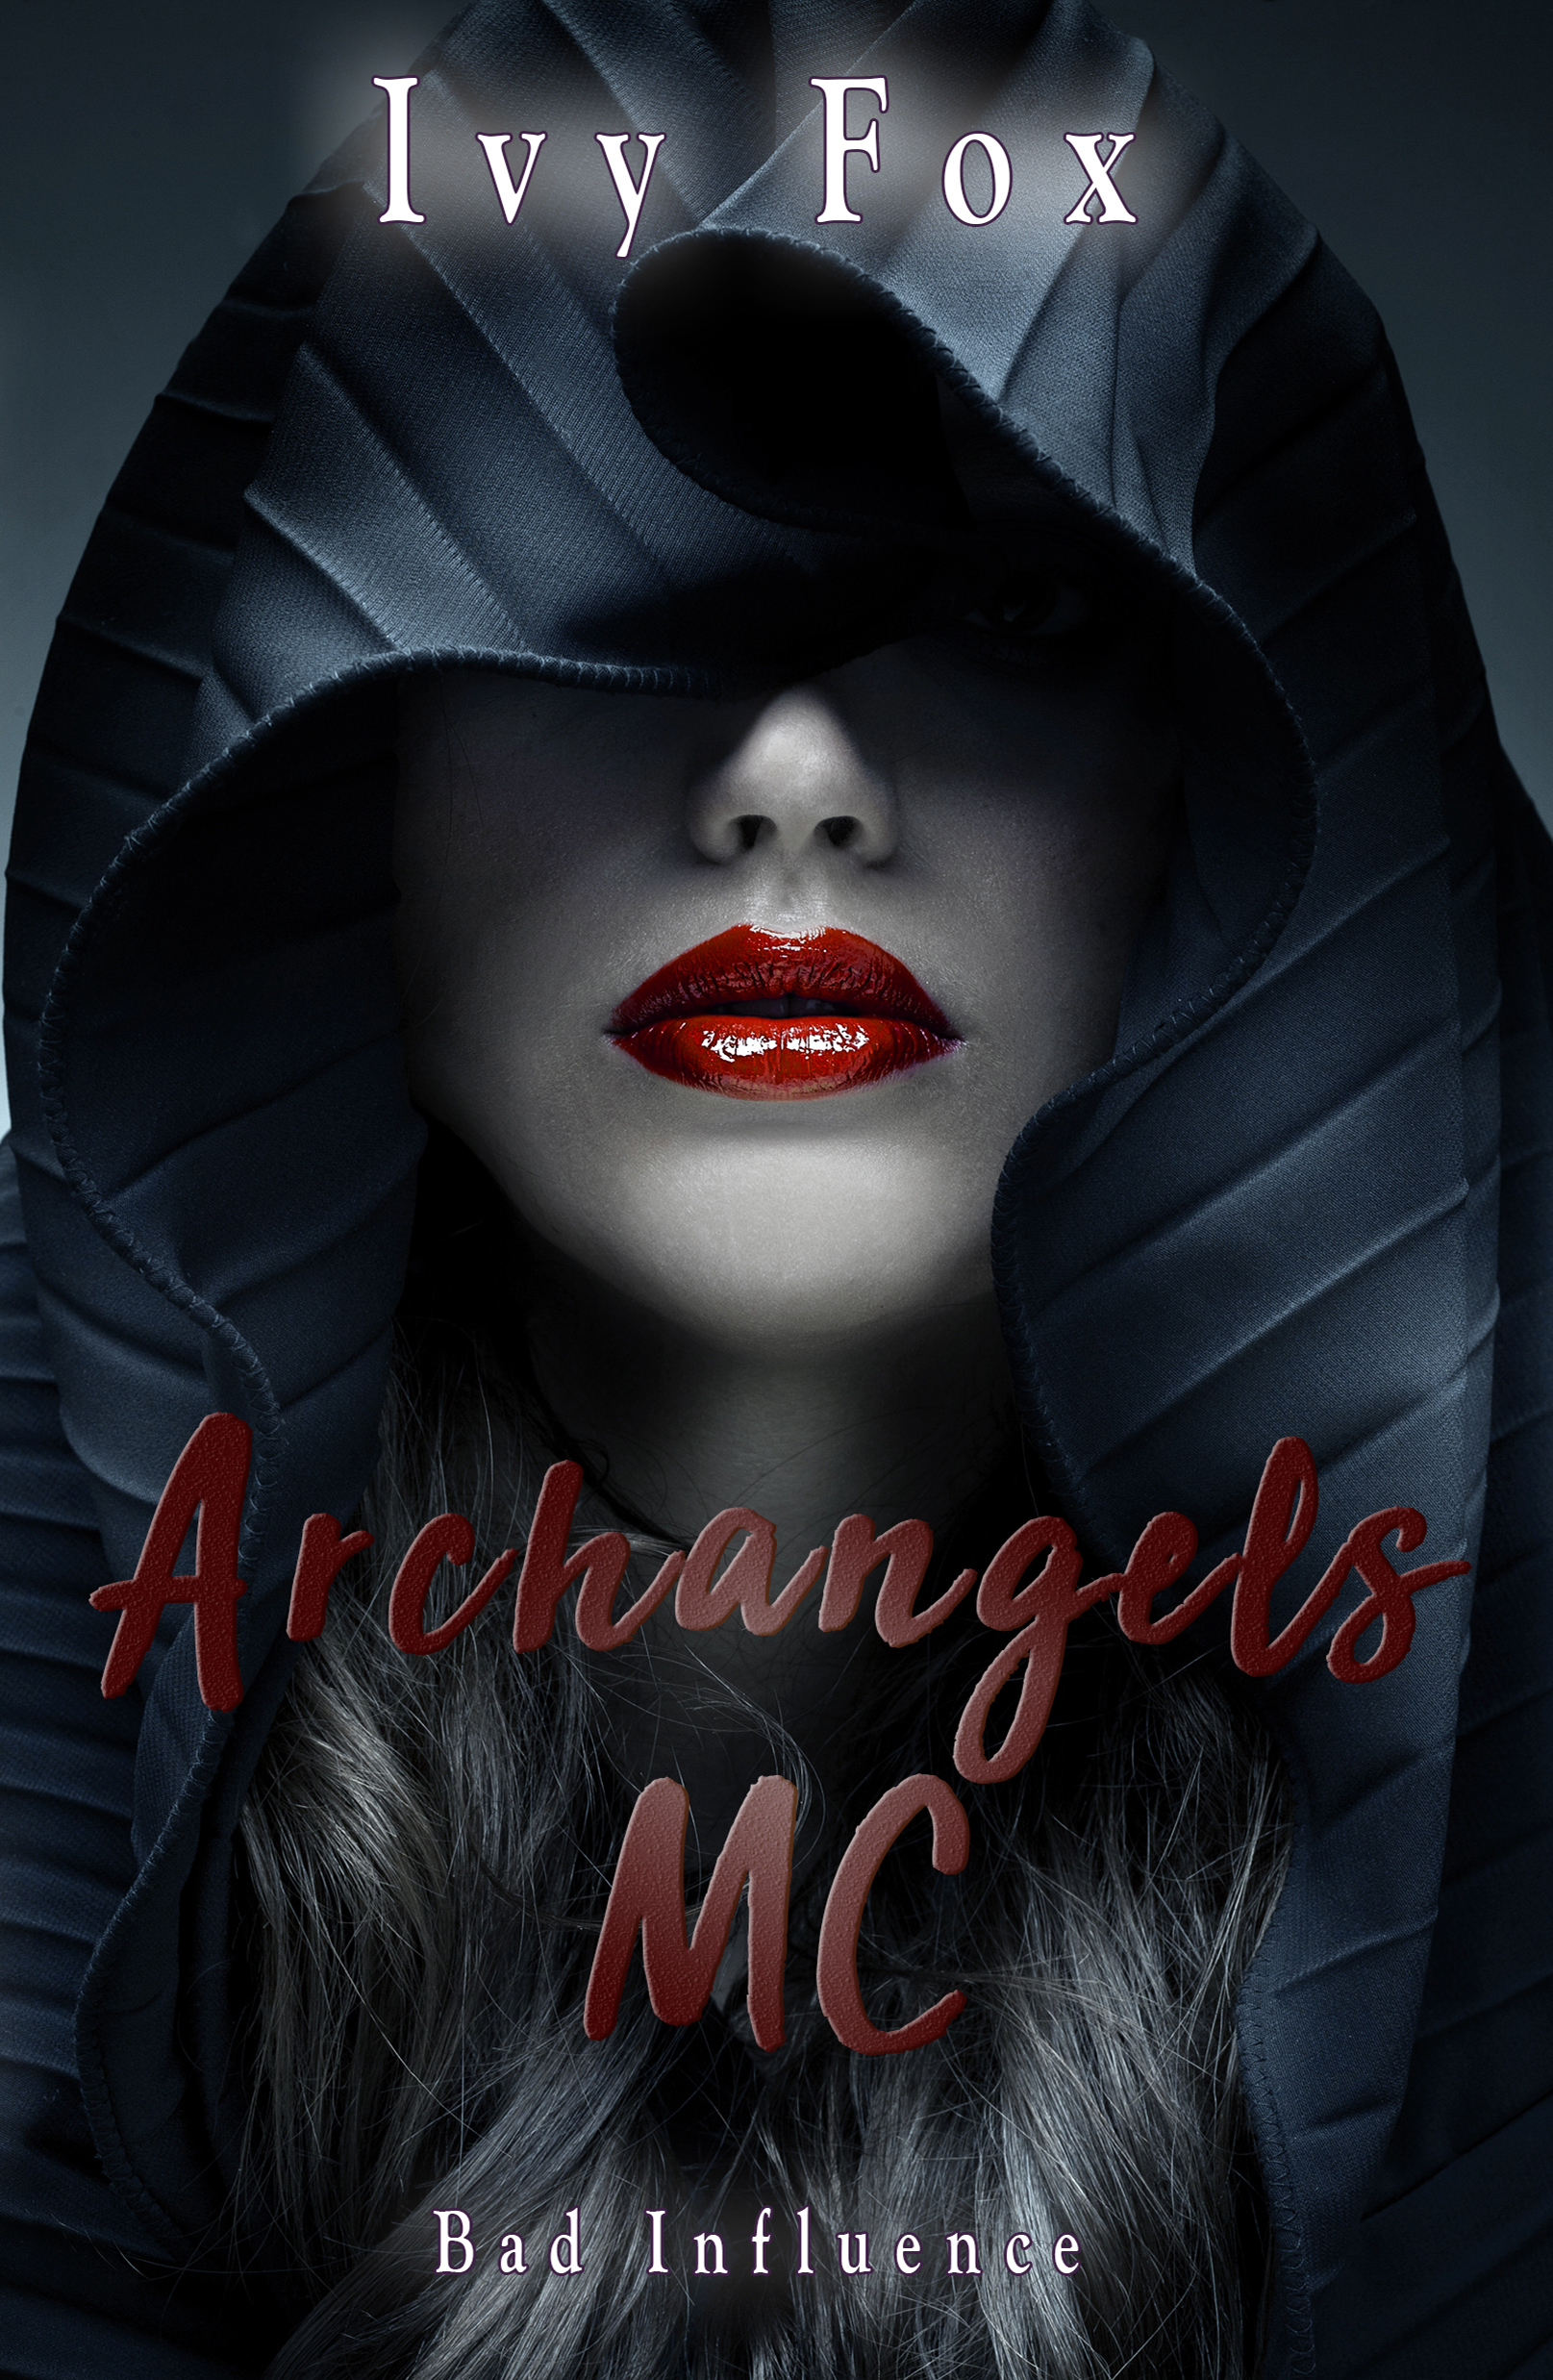 Archangels MC (Bad Influence, #2) by Ivy Fox